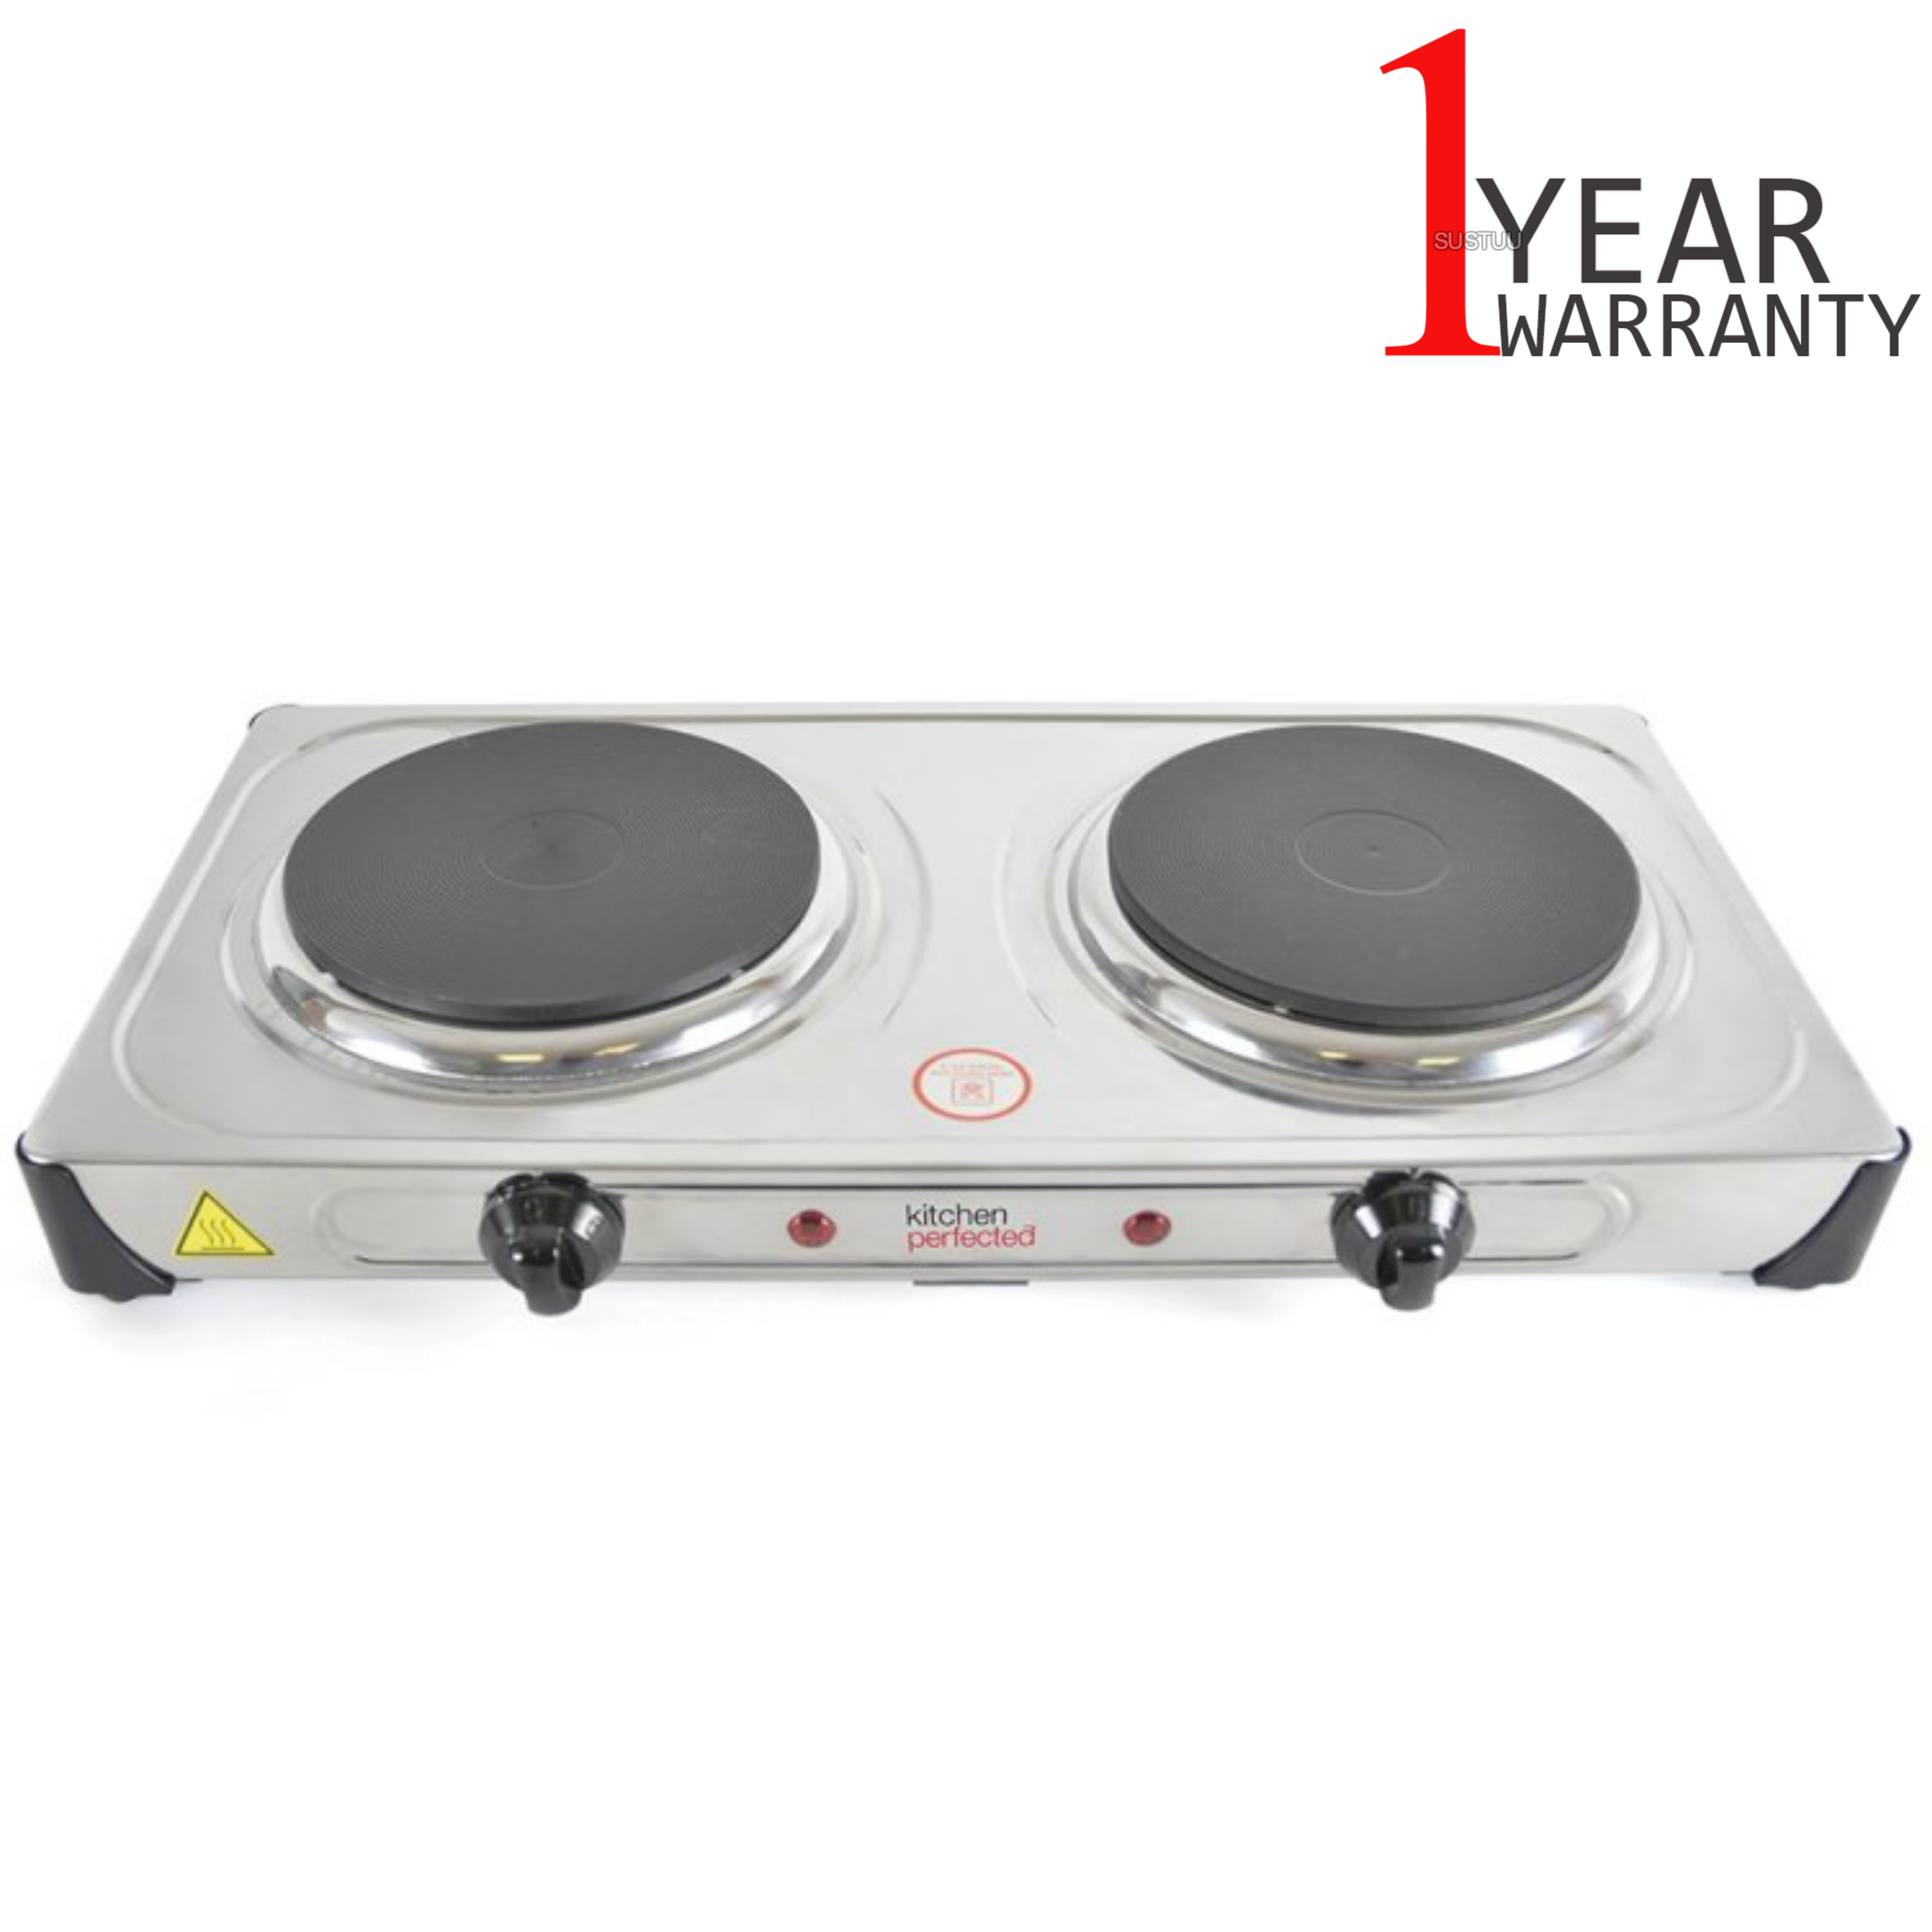 Lloytron KitchenPerfected 2000w Double Induction Cast Iron Hotplate | Stainless Steel